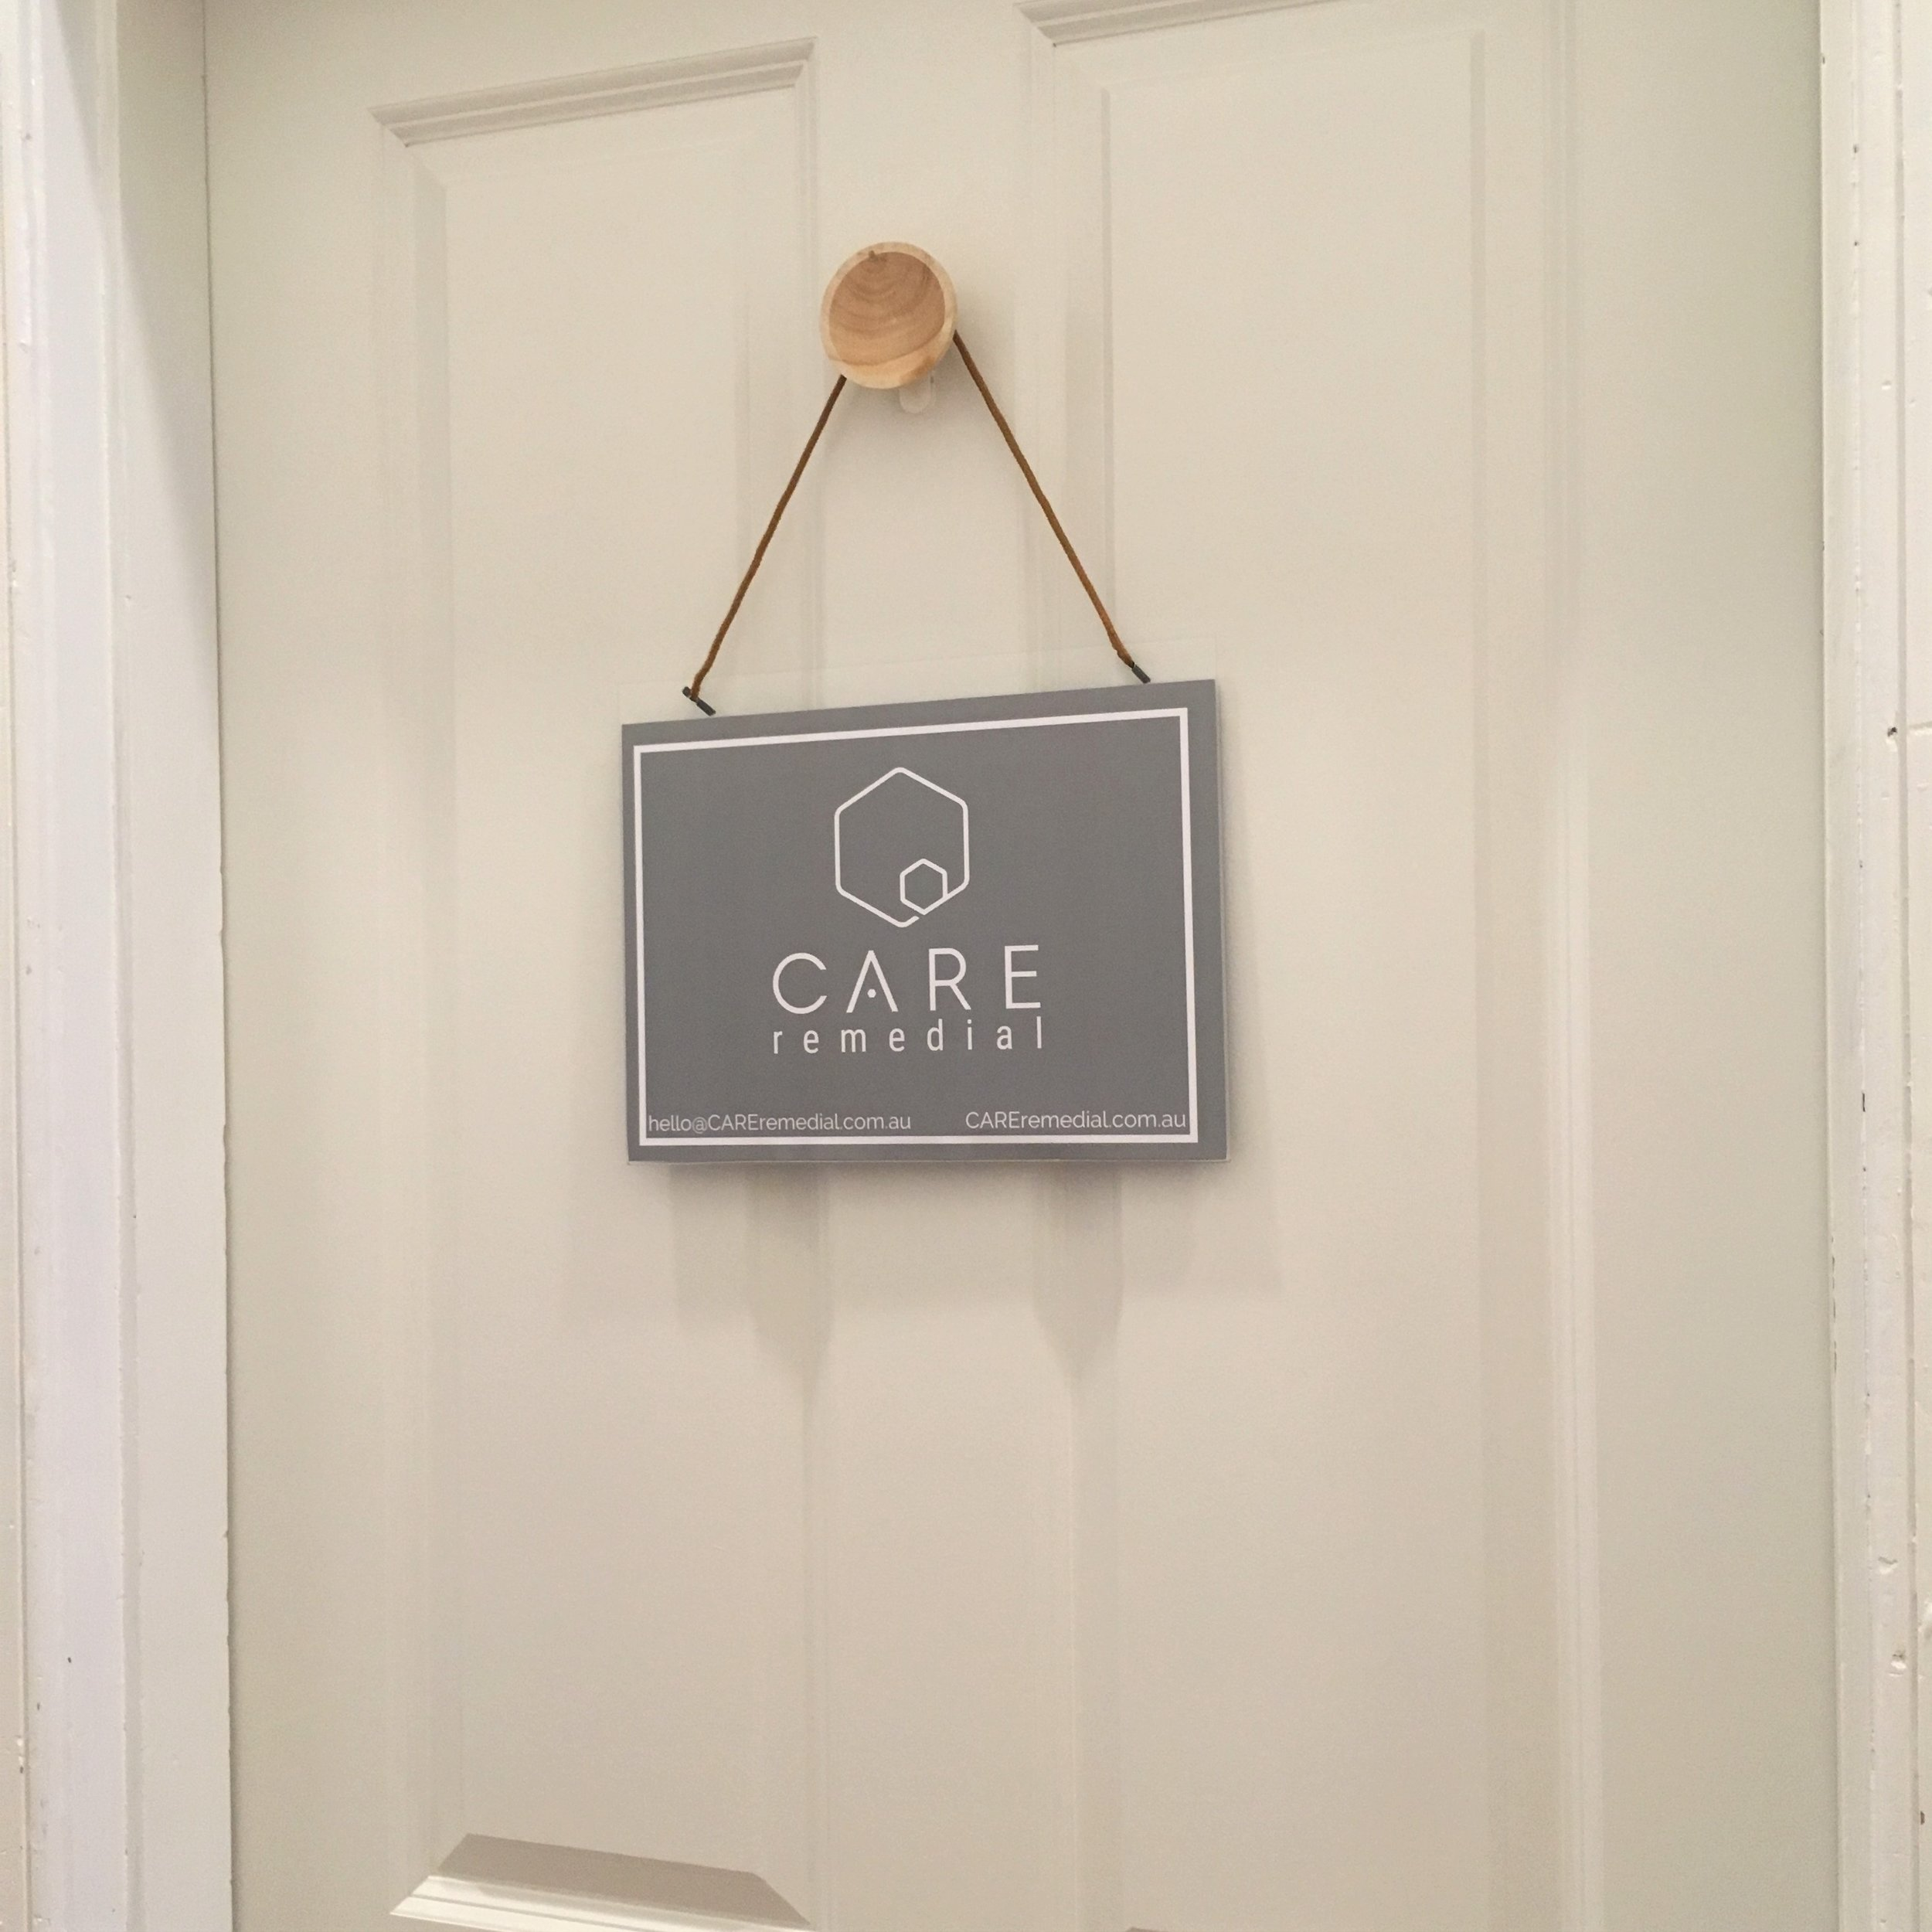 CARE remedial door sign.jpeg